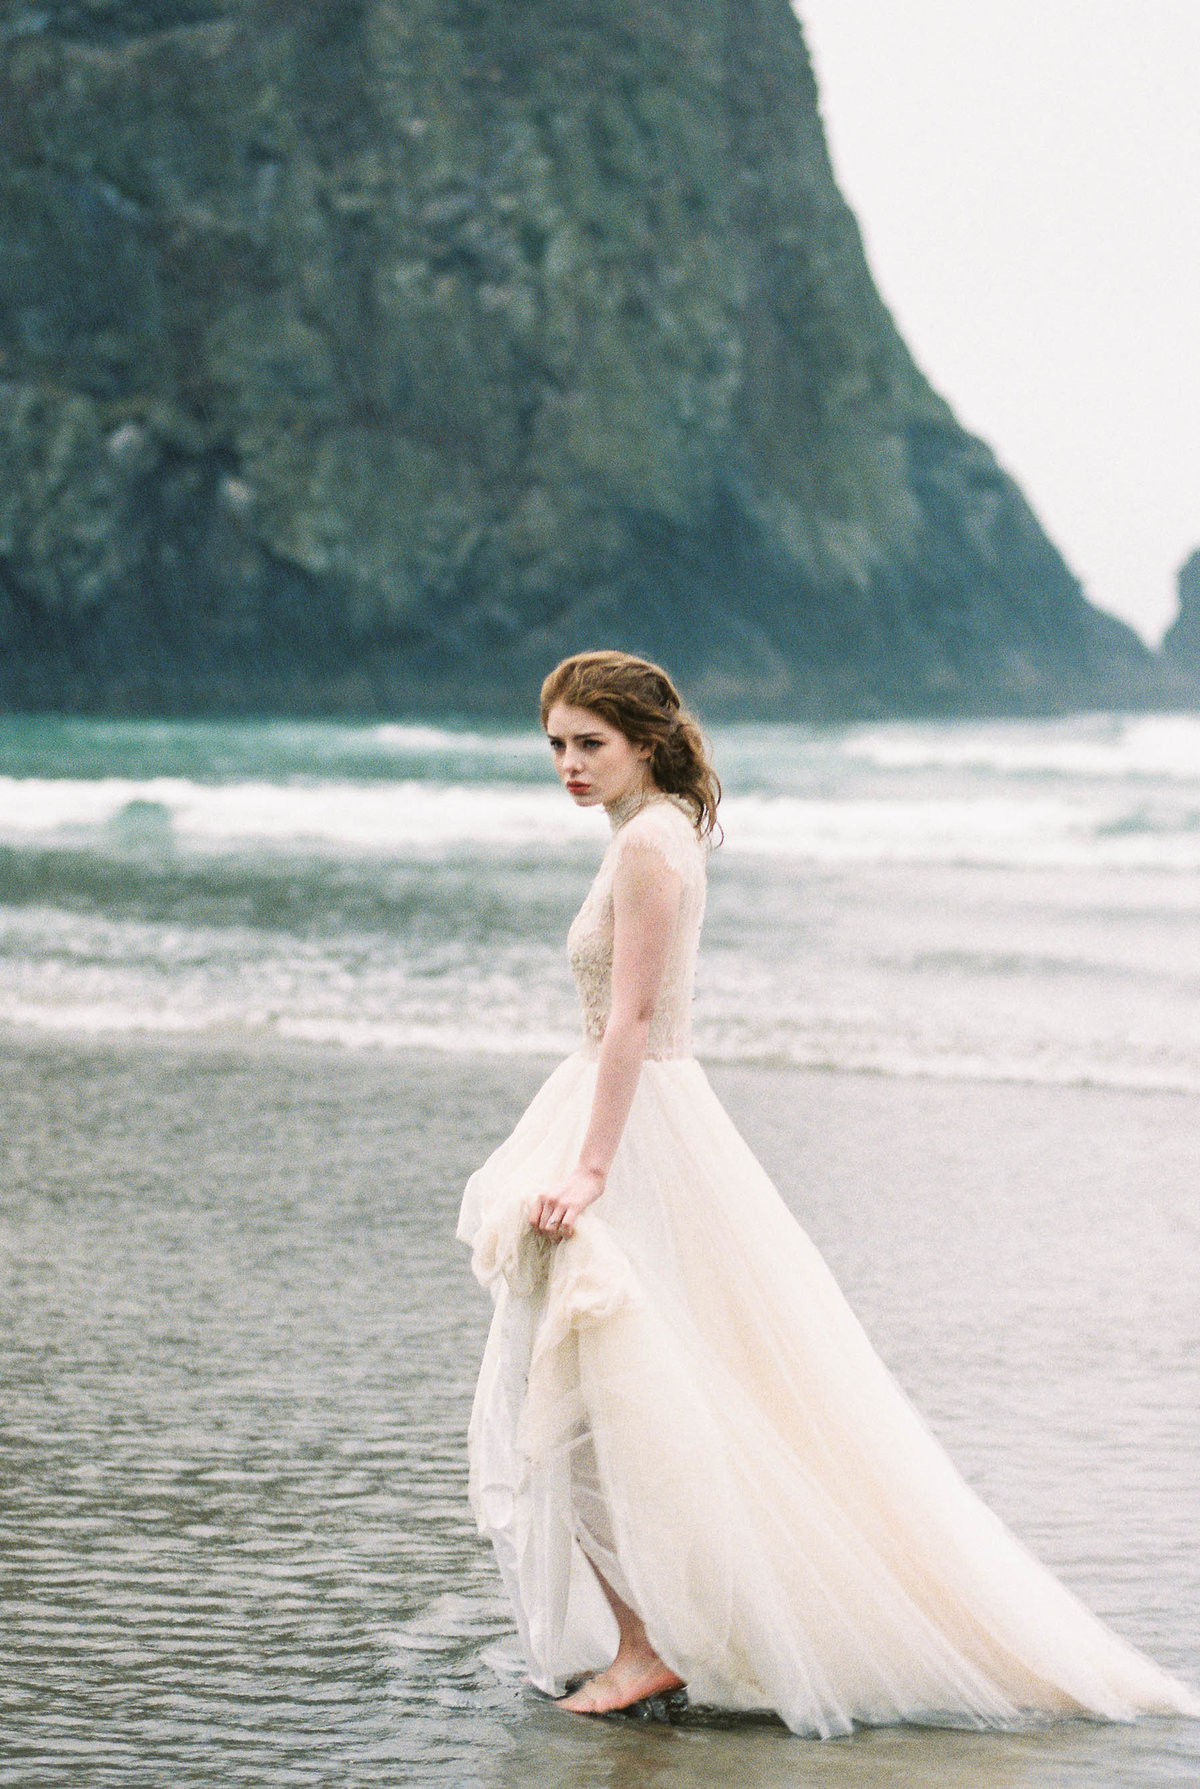 Cannon-Beach-Bridal-Editorial-Georgia-Ruth-Photography-35